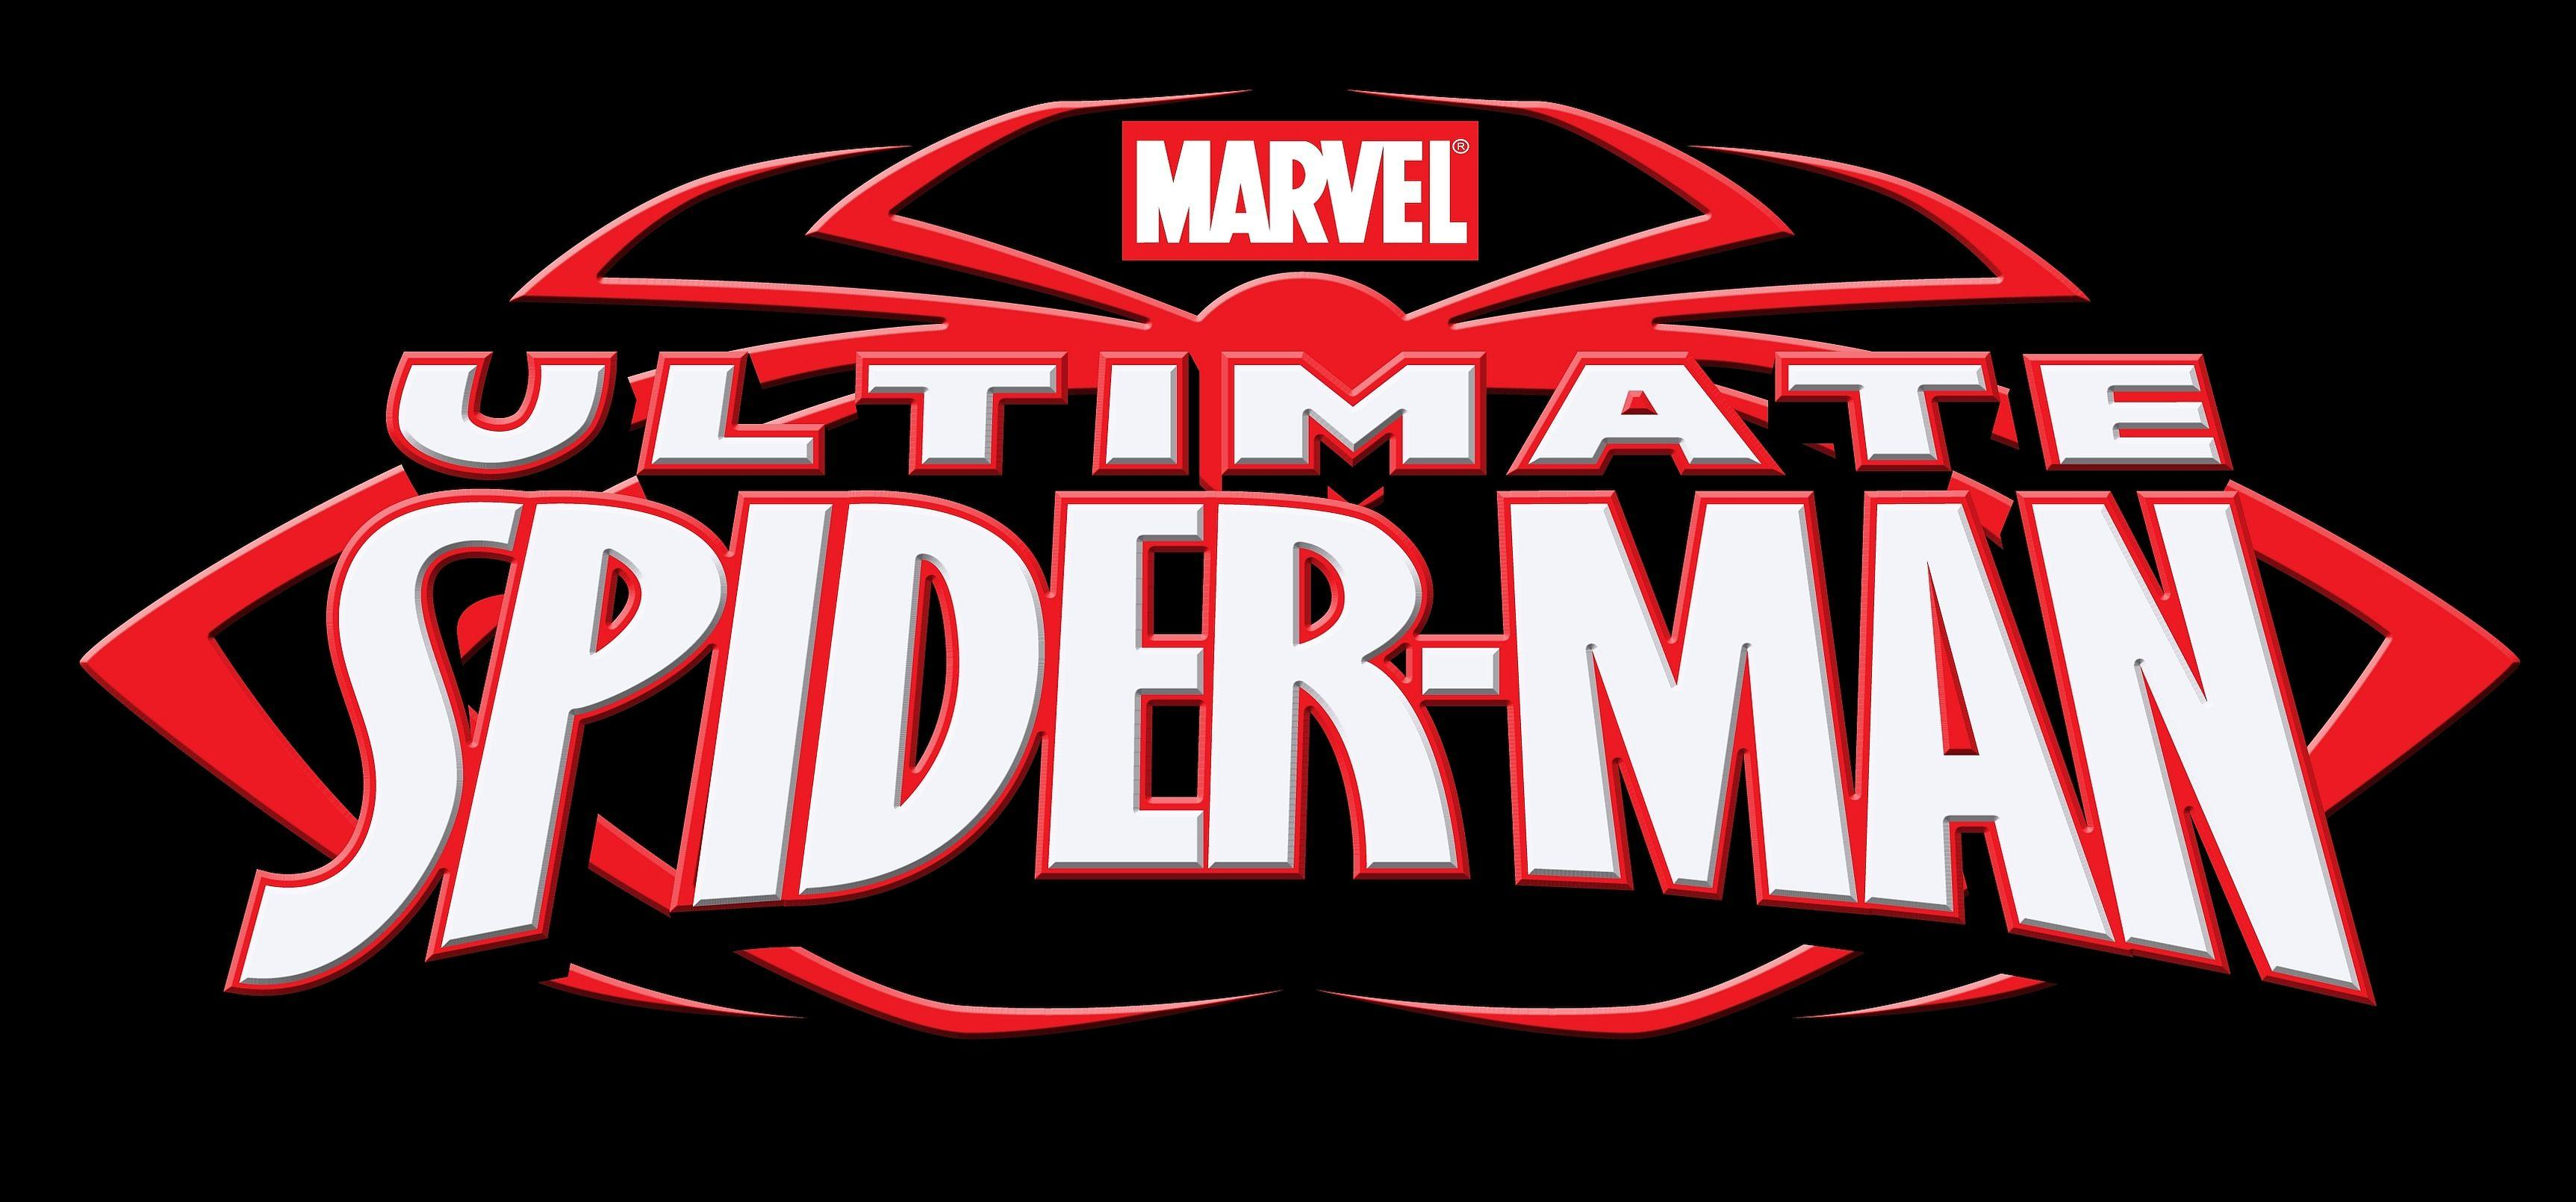 12 Ultimate Spider-Man HD Wallpapers | Backgrounds - Wallpaper Abyss